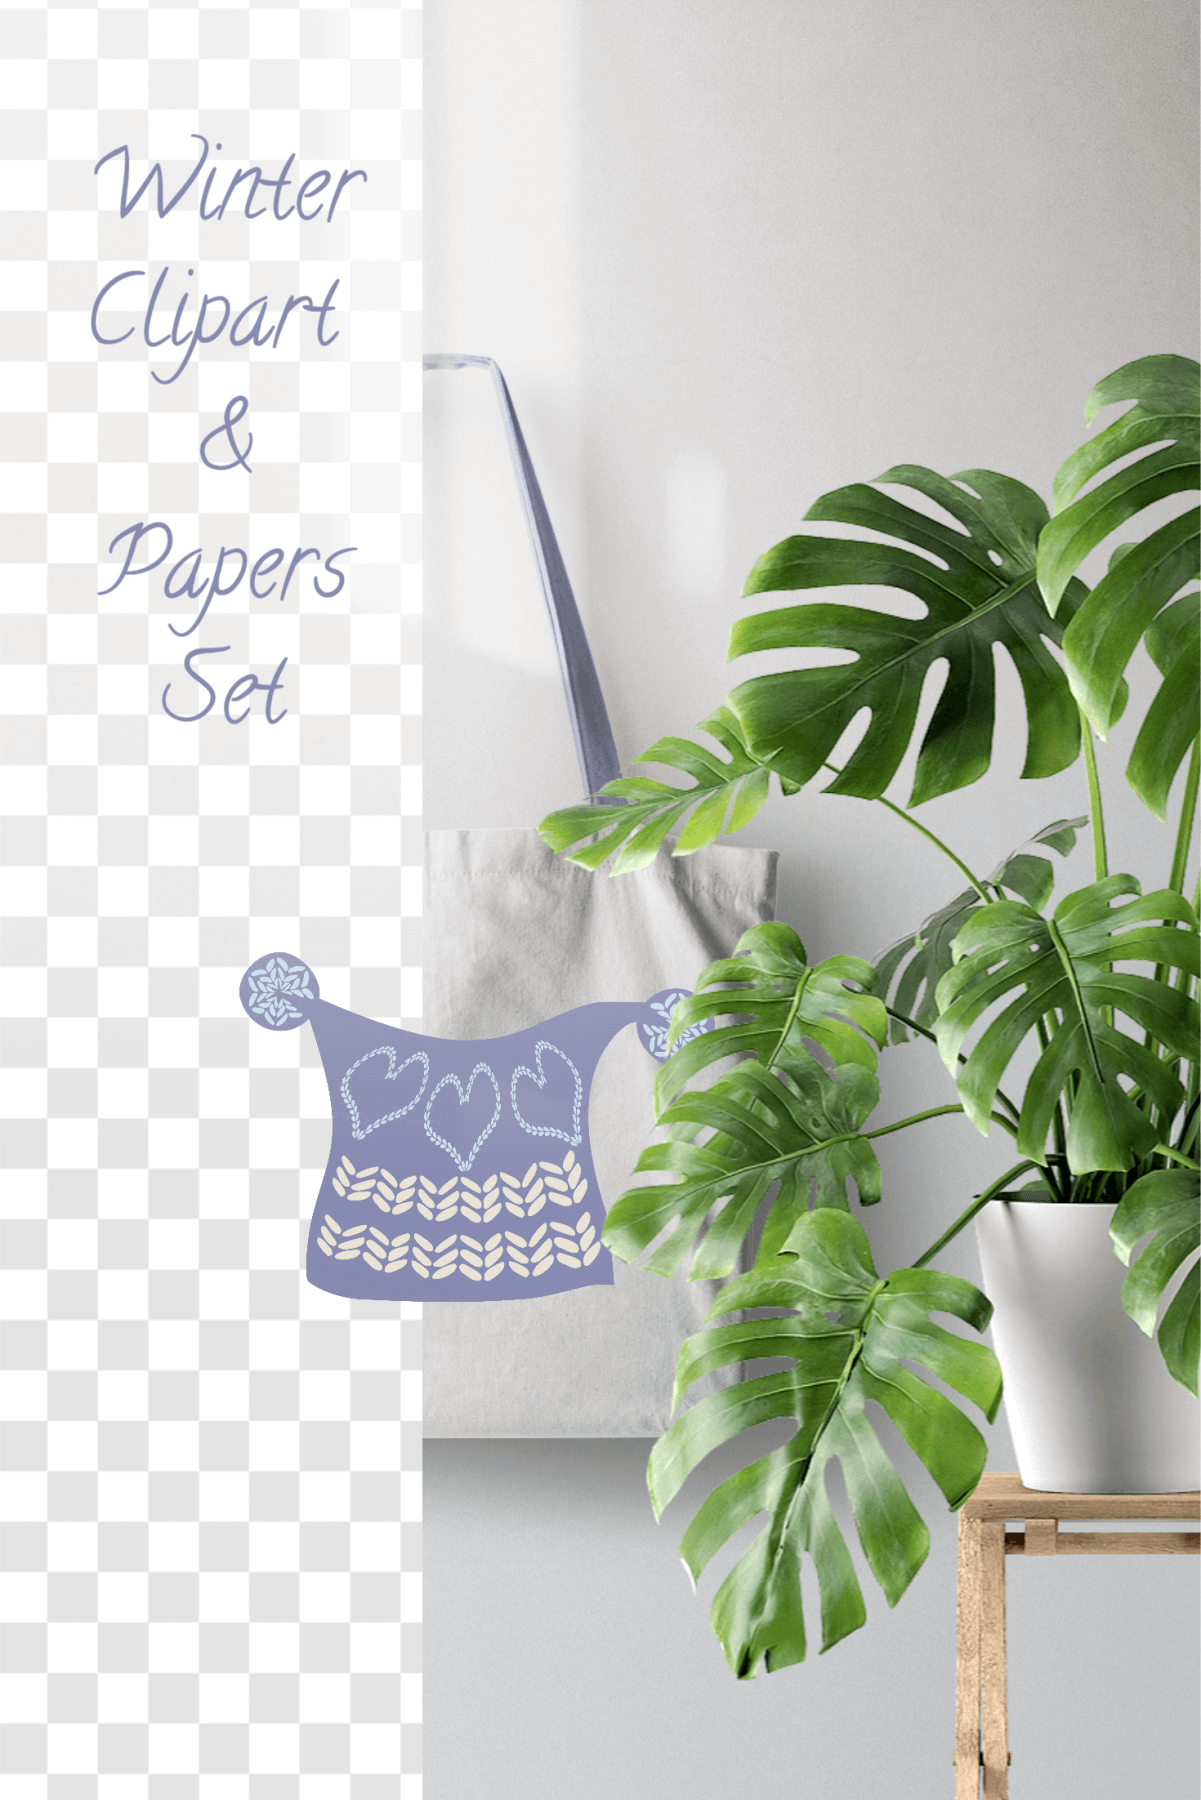 Winter Knitted Accessories Clipart & Scrapbooking Papers Set example image 16